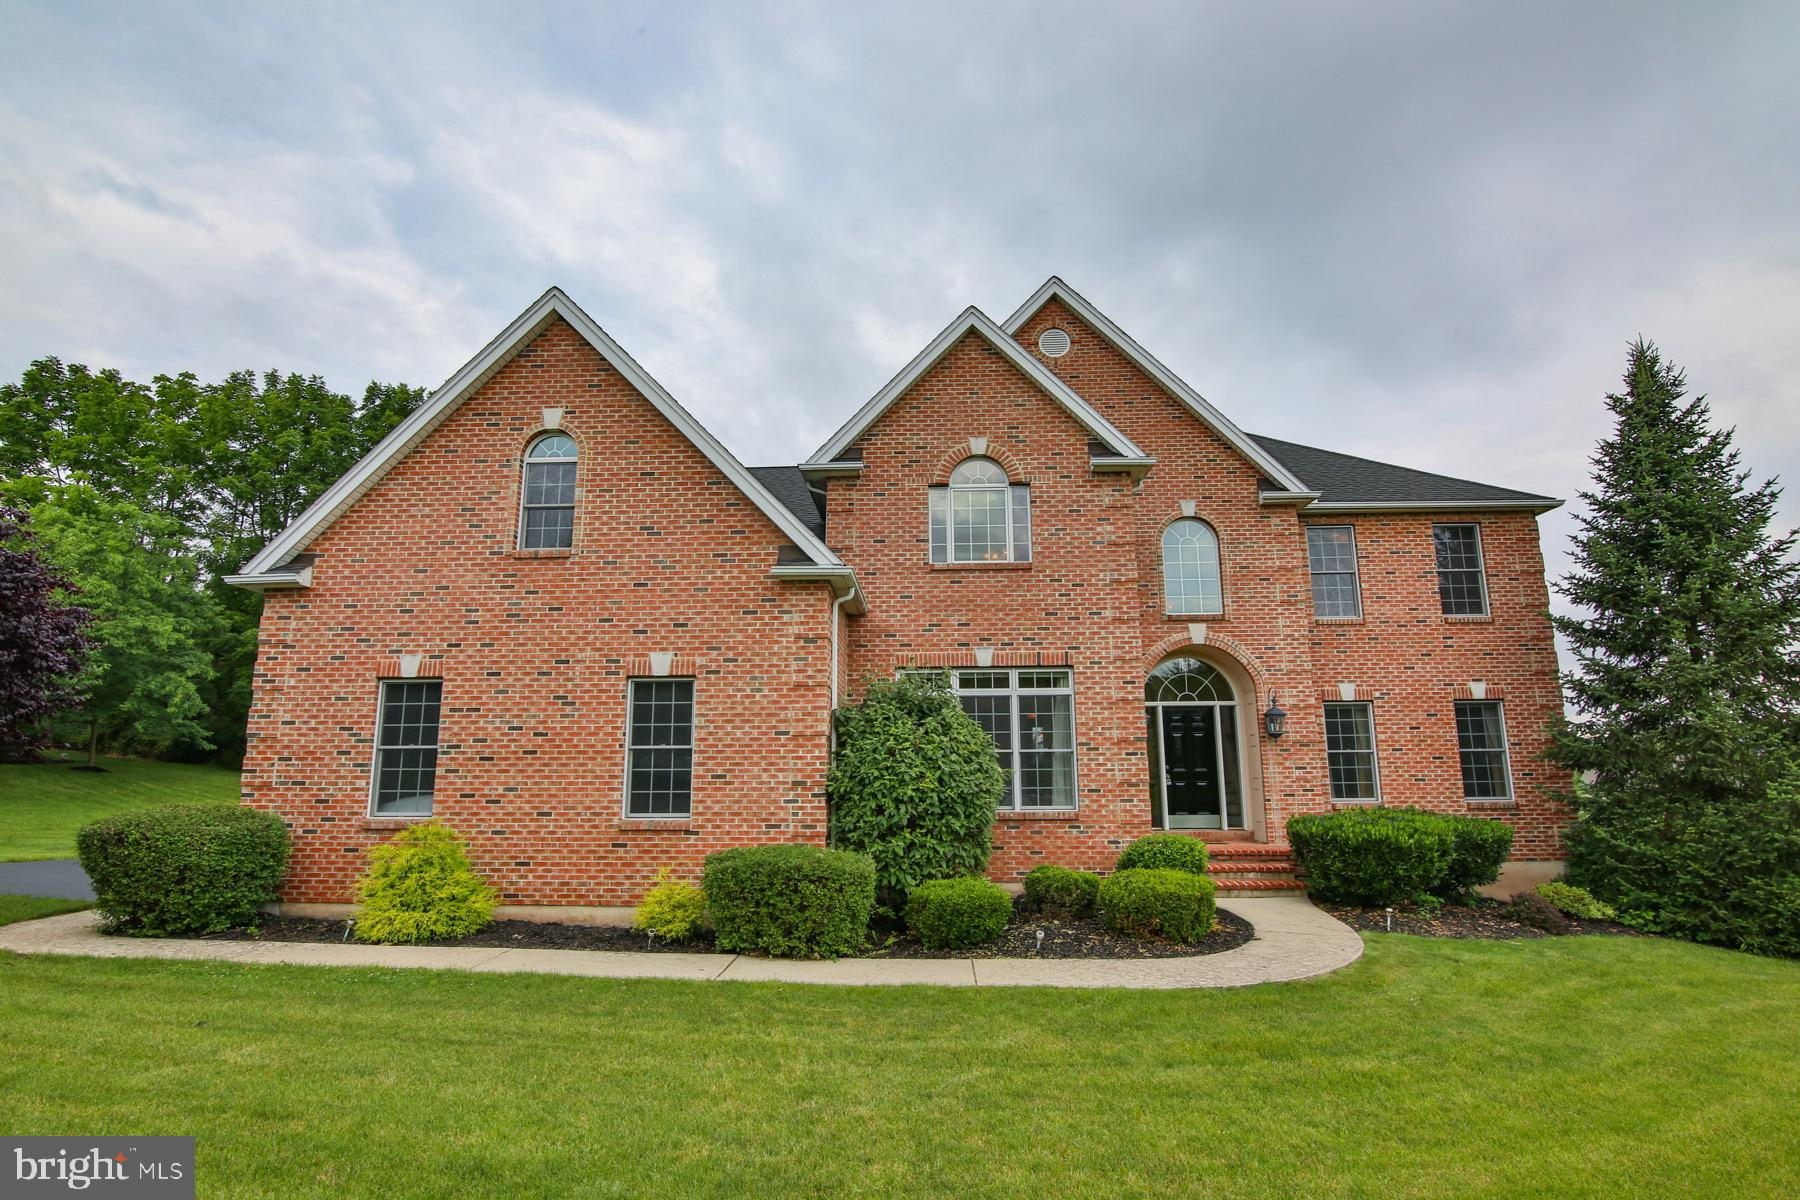 2954 KRISTIN COURT, CENTER VALLEY, PA 18034